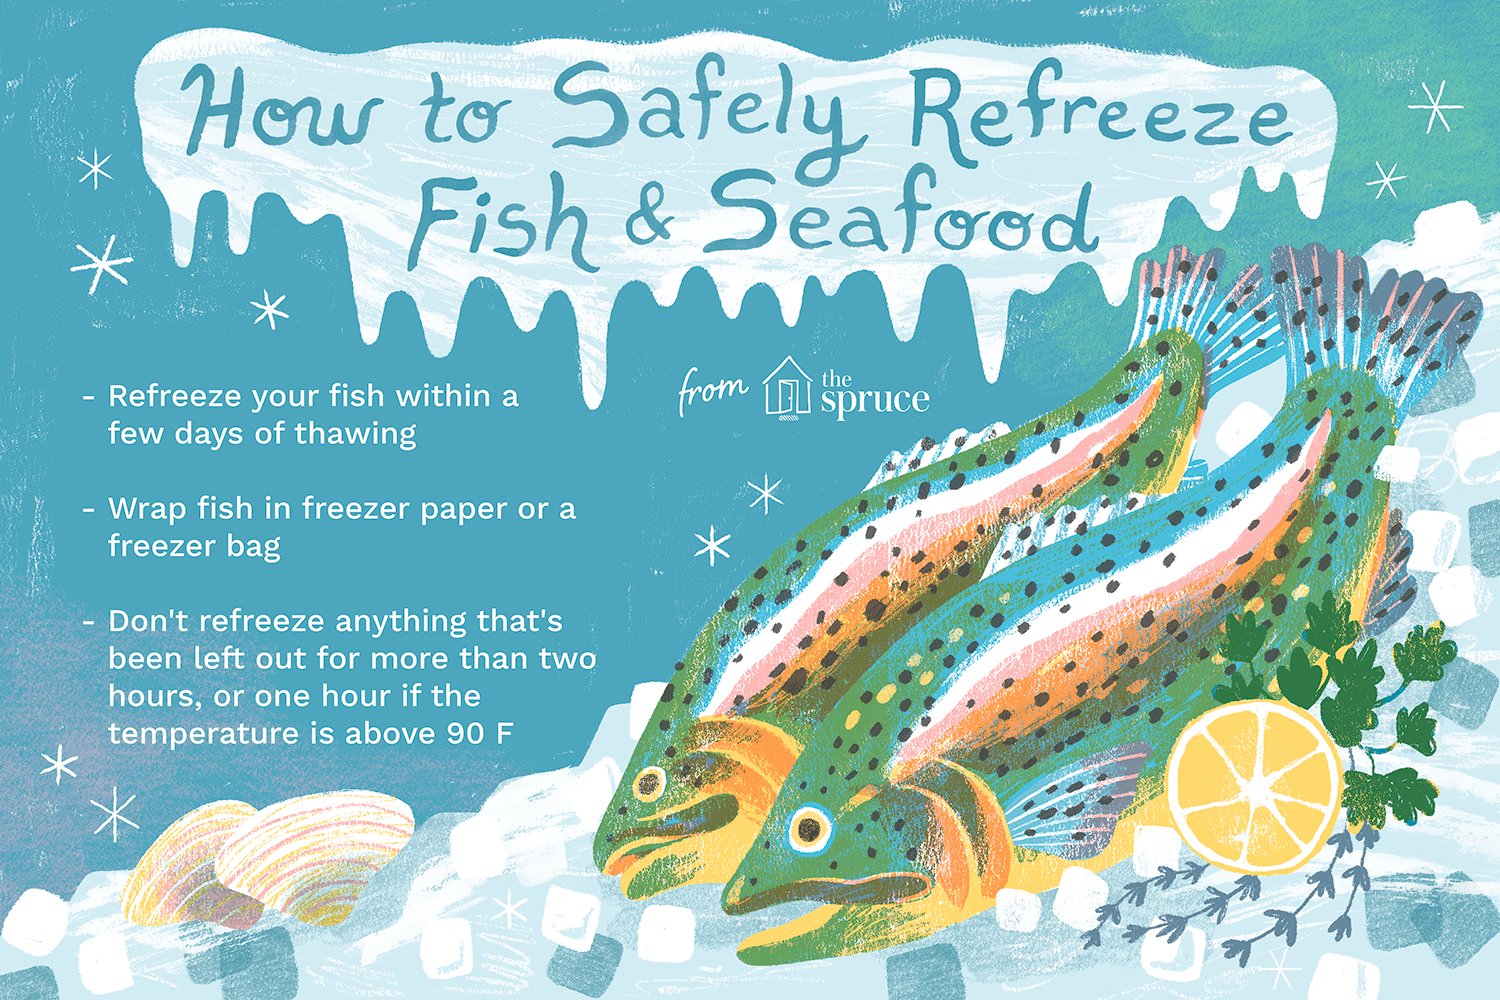 Can You Refreeze Fish Safely?